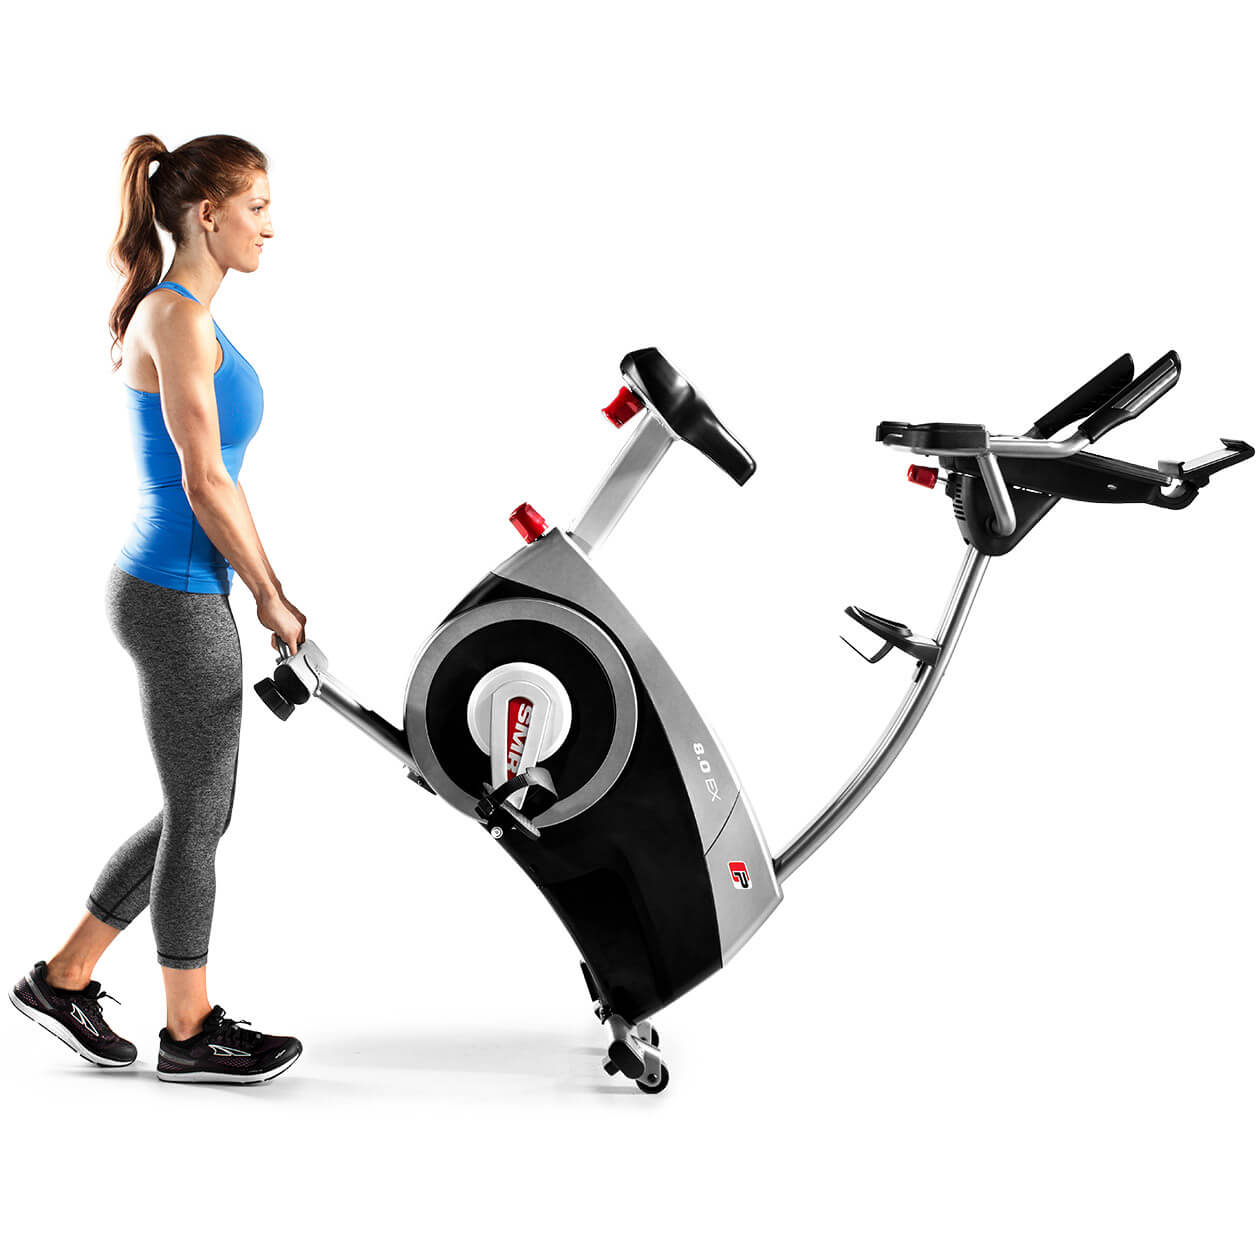 Proform Exercise Bikes 8.0 EX  gallery image 8